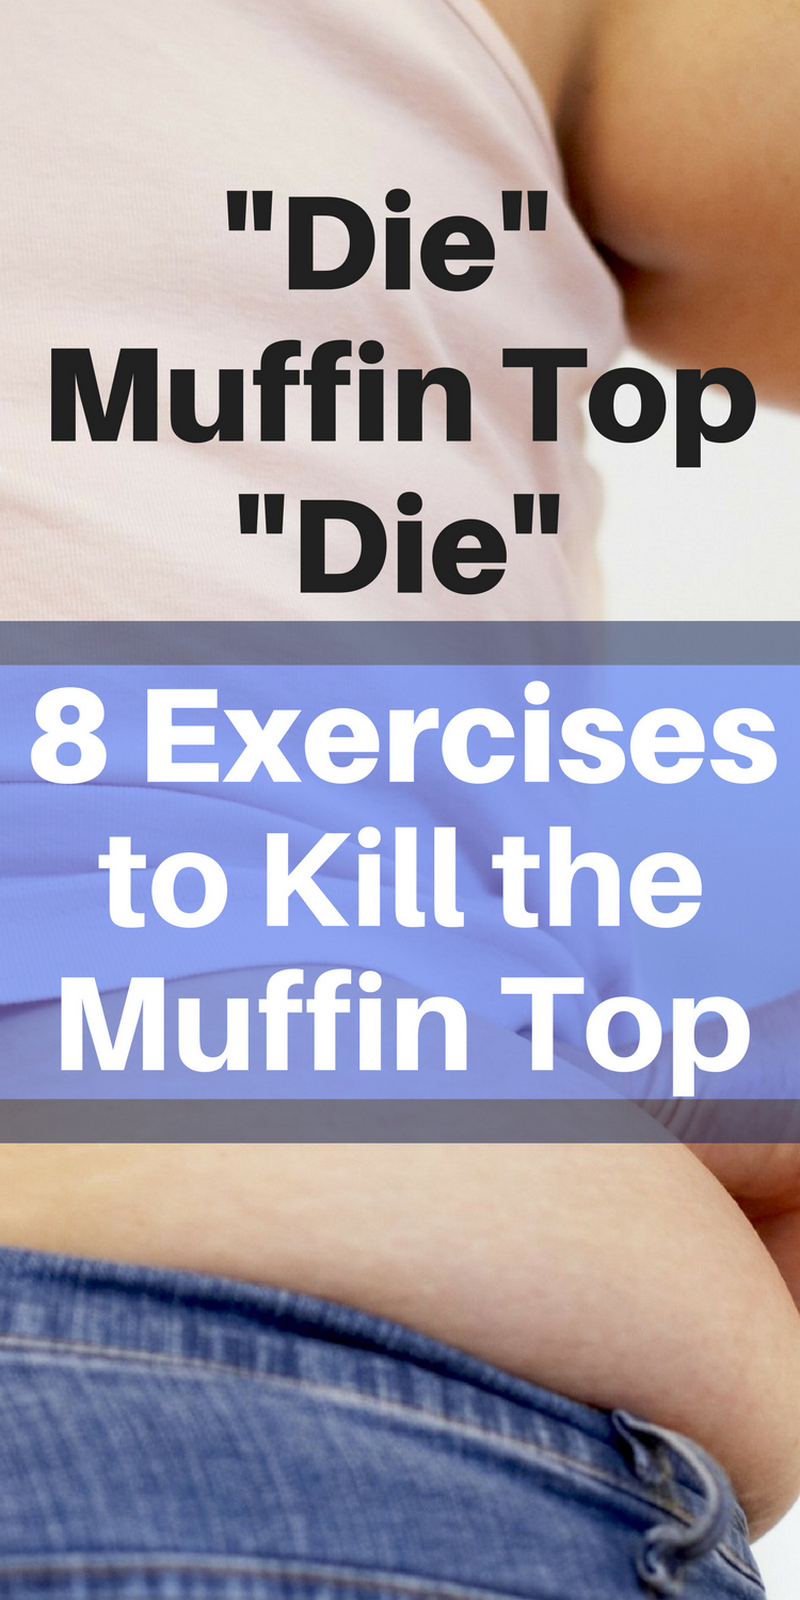 8 Exercises to Kill the Muffin Top | Die Muffin Top Die | Excercise  | Excercise Motivation | Excercise Ball Workout | Excercise For Beginners | Excercise Motivation for Women | For Beginners At Home | For Beginners Gym | For Beginners Belly | For Beginners Over 50 | Excercise Ball Workout For Men | Excercise Ball Workout For Beginners | Excercise Ball Workout Muffintop | Muffintop Exercise | Muffintop Challenge | Muffin top Workout | ARoadtoTravel.com